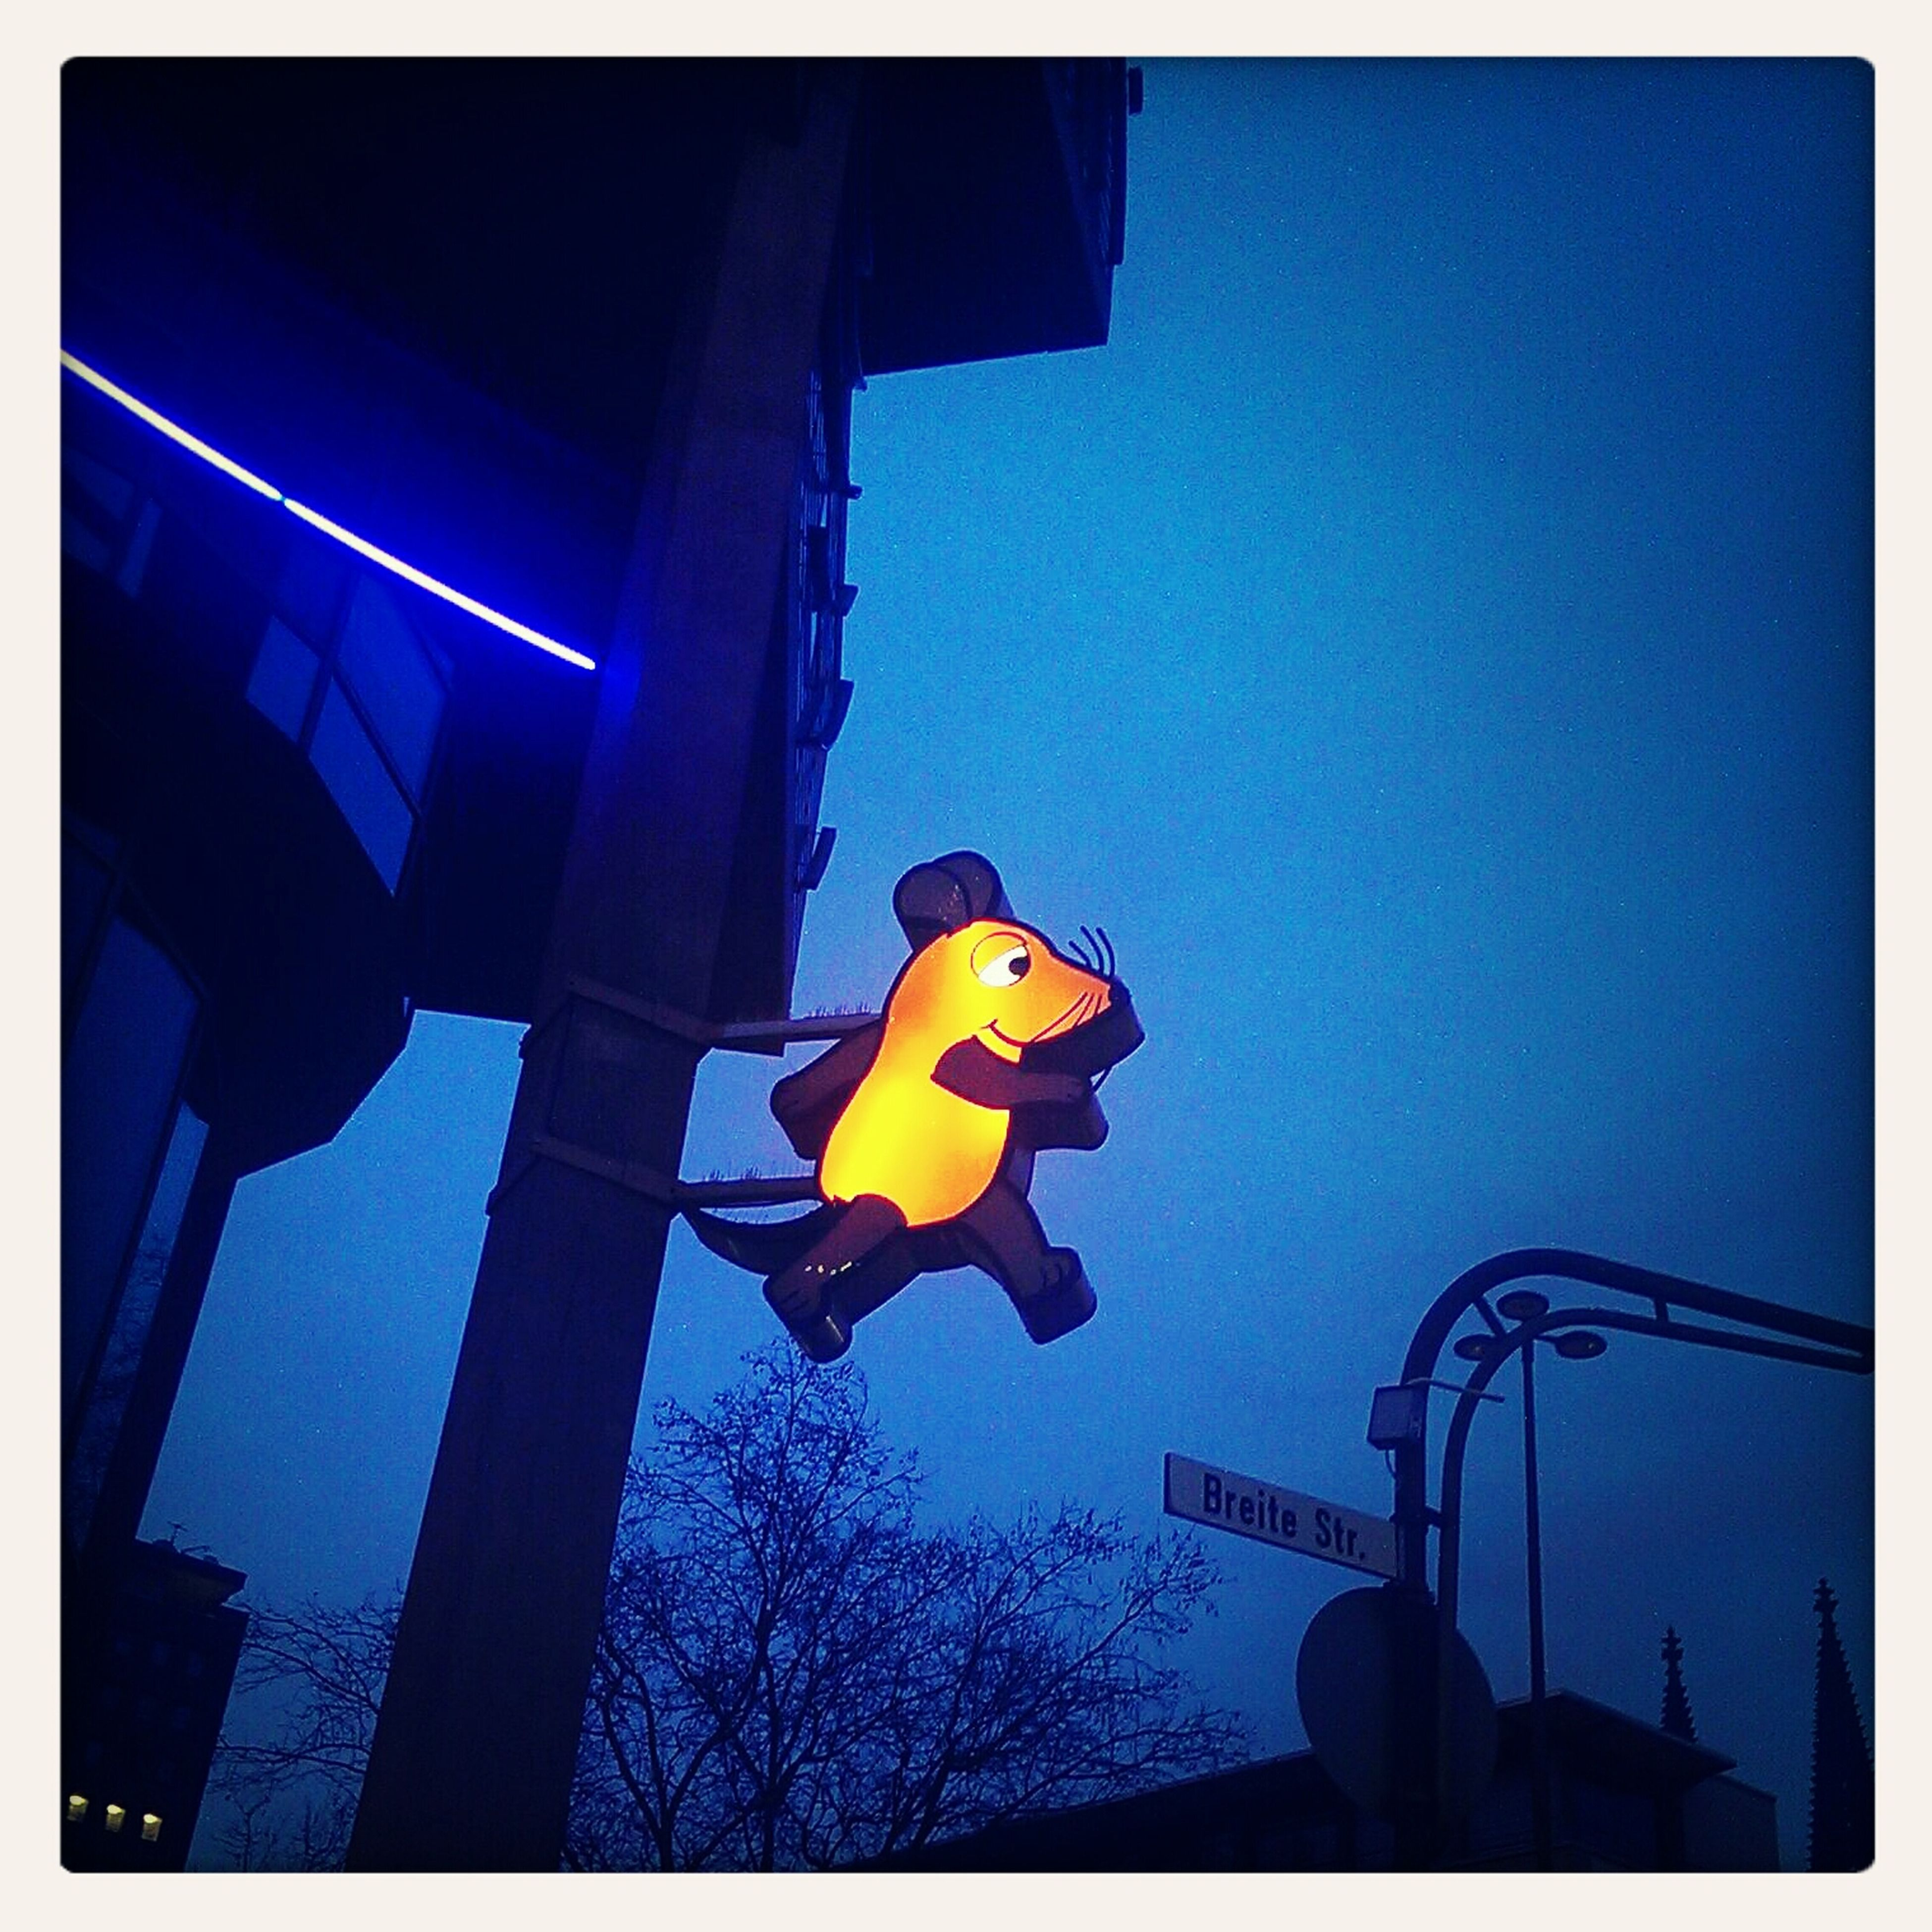 Sendung Mit Der Mause Mouse Night Photography Neon Sign